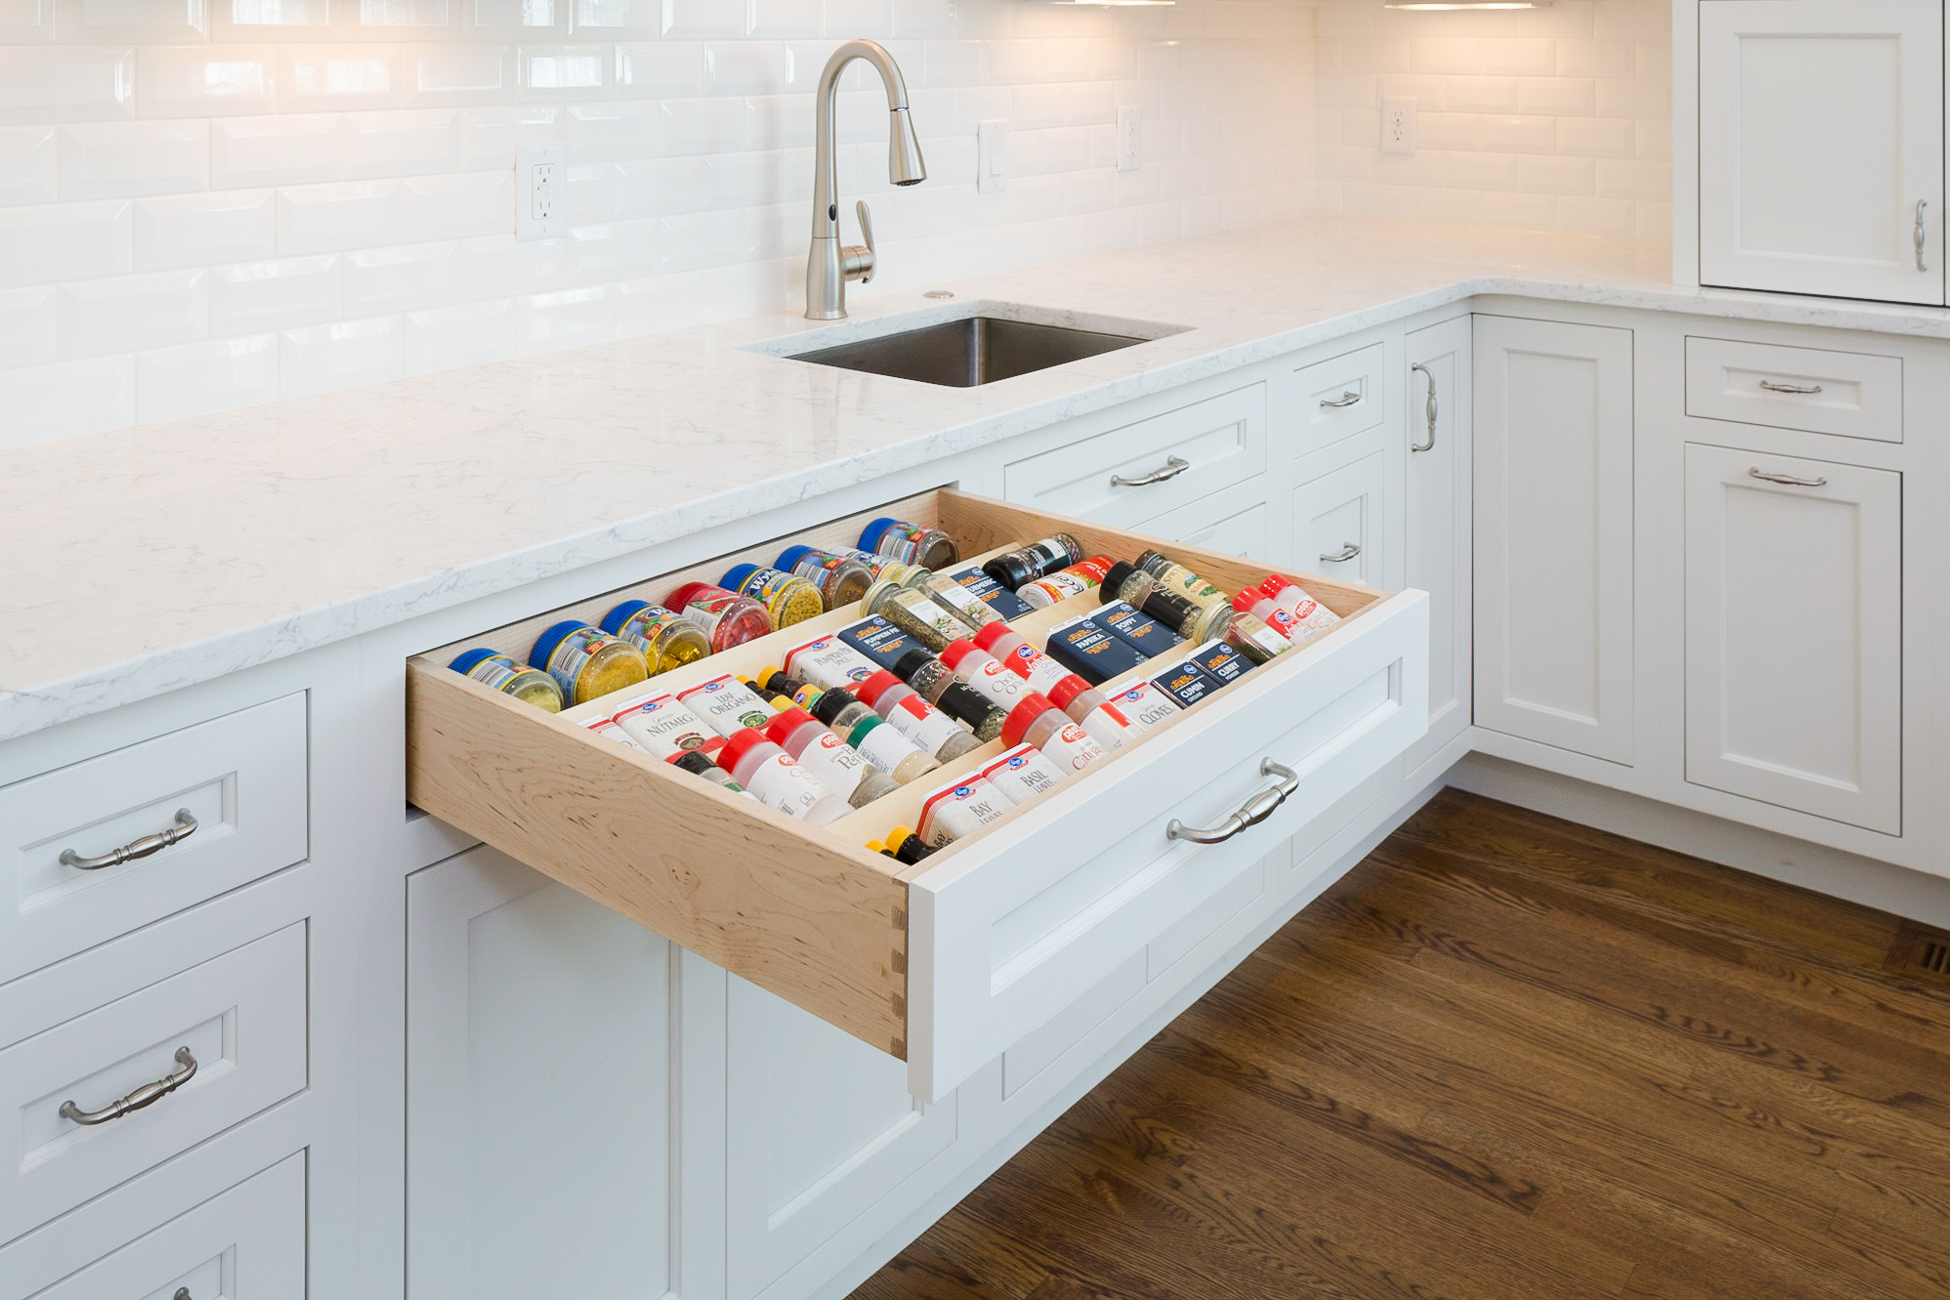 Spice drawer in a white kitchen